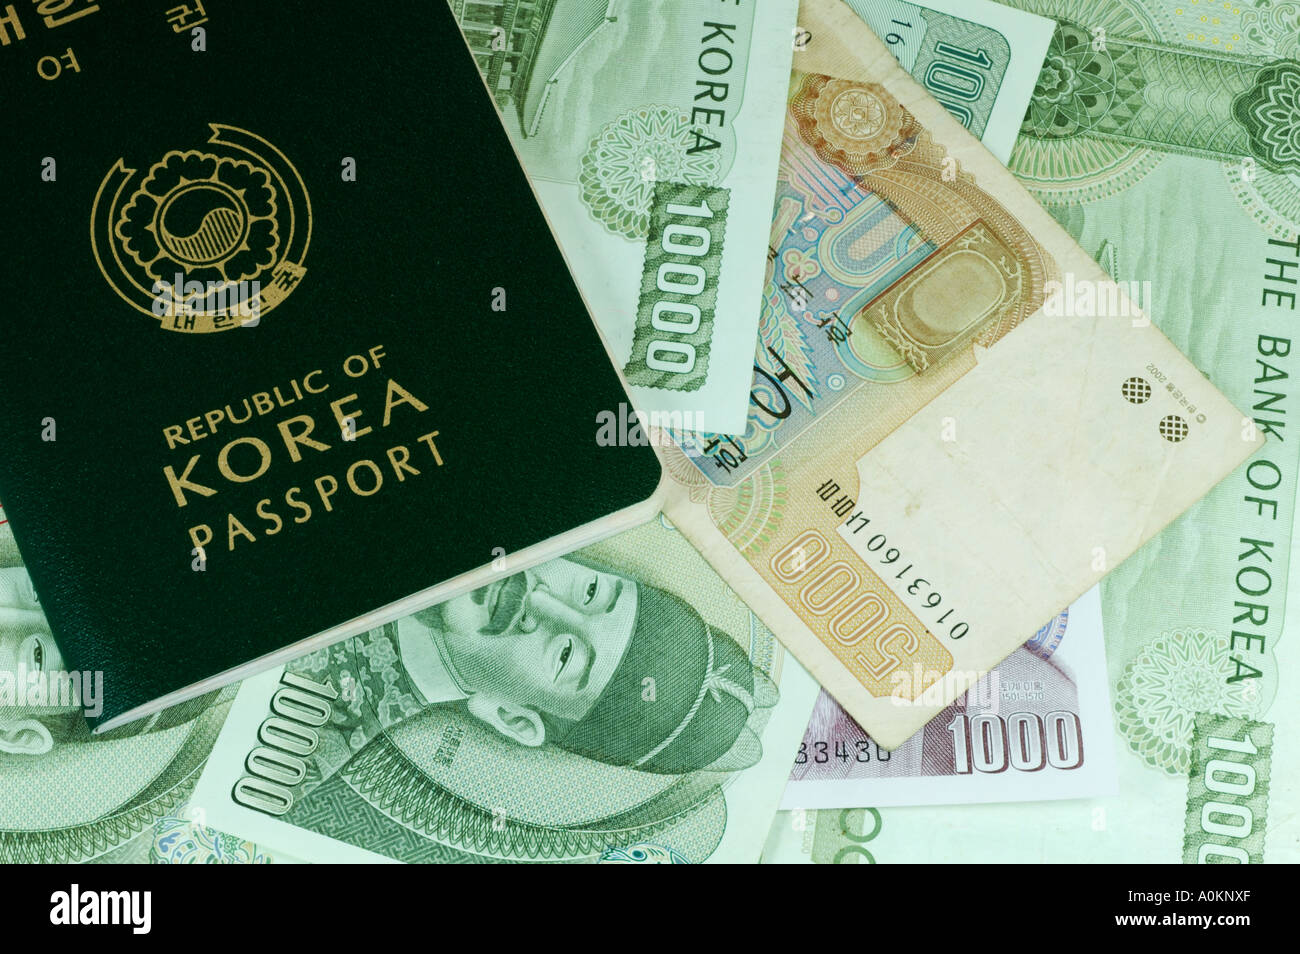 Korean currency stock photos korean currency stock images alamy korean passport and korean currency stock image buycottarizona